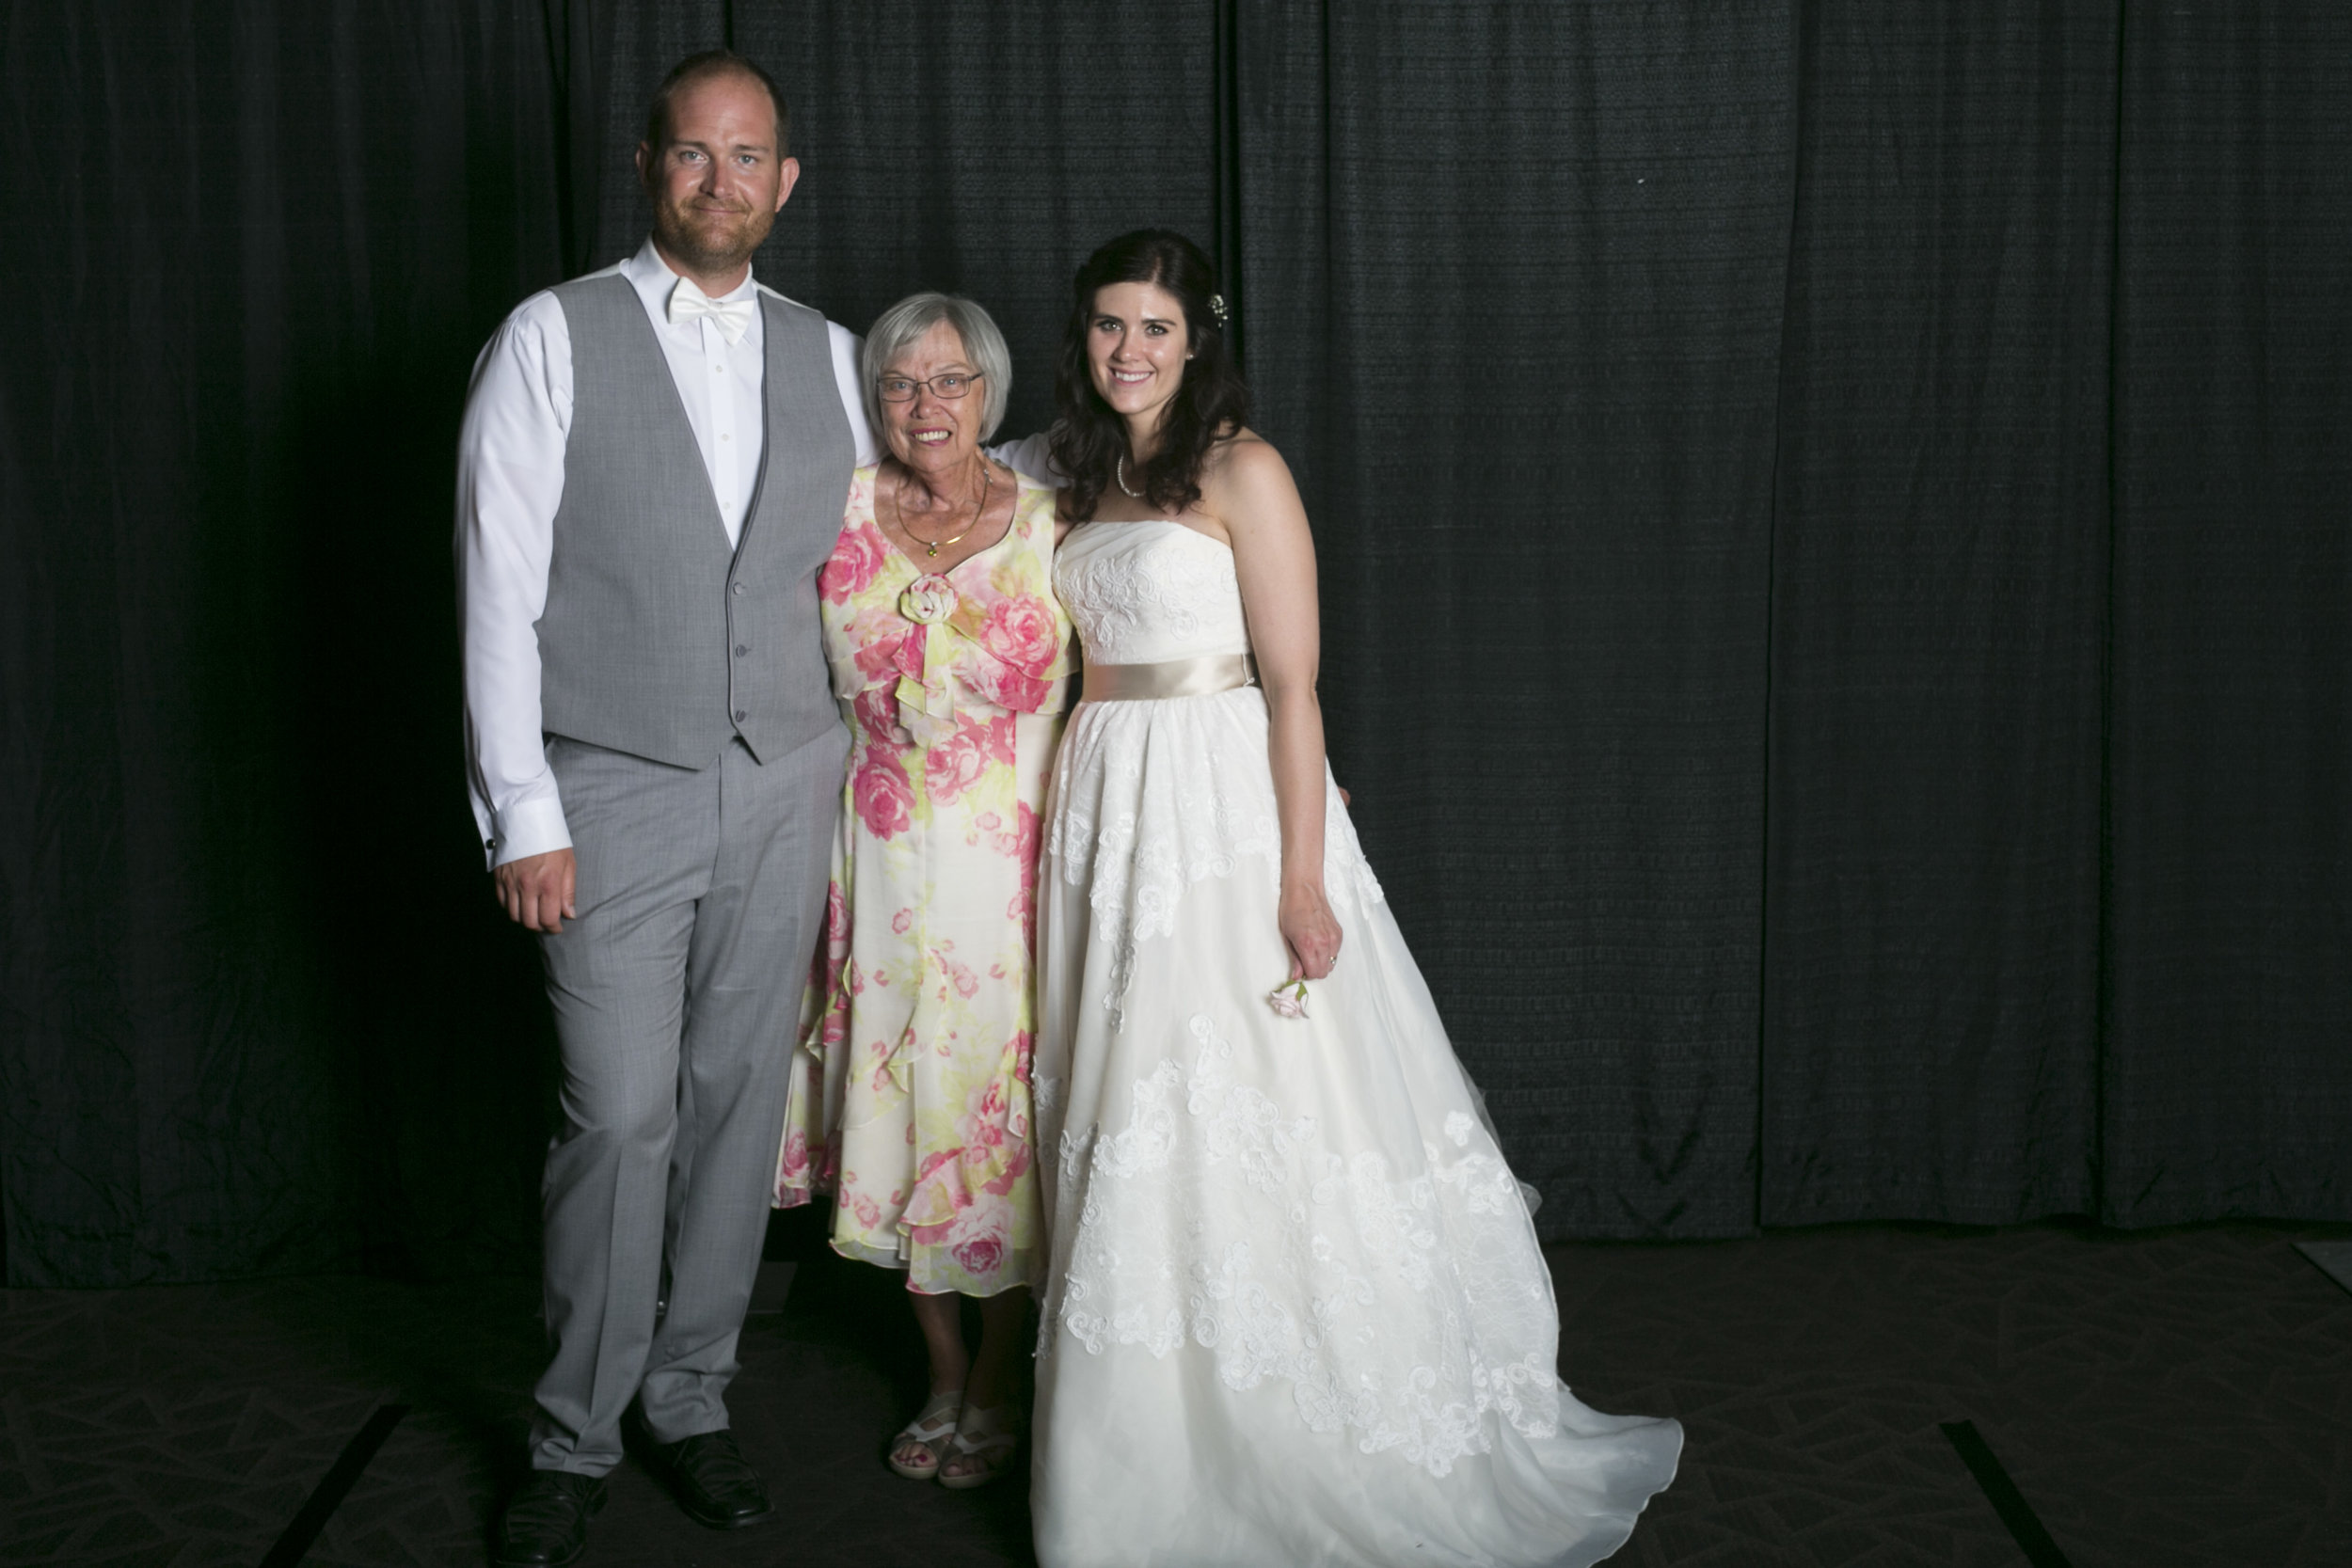 wedding photo booth-103.jpg